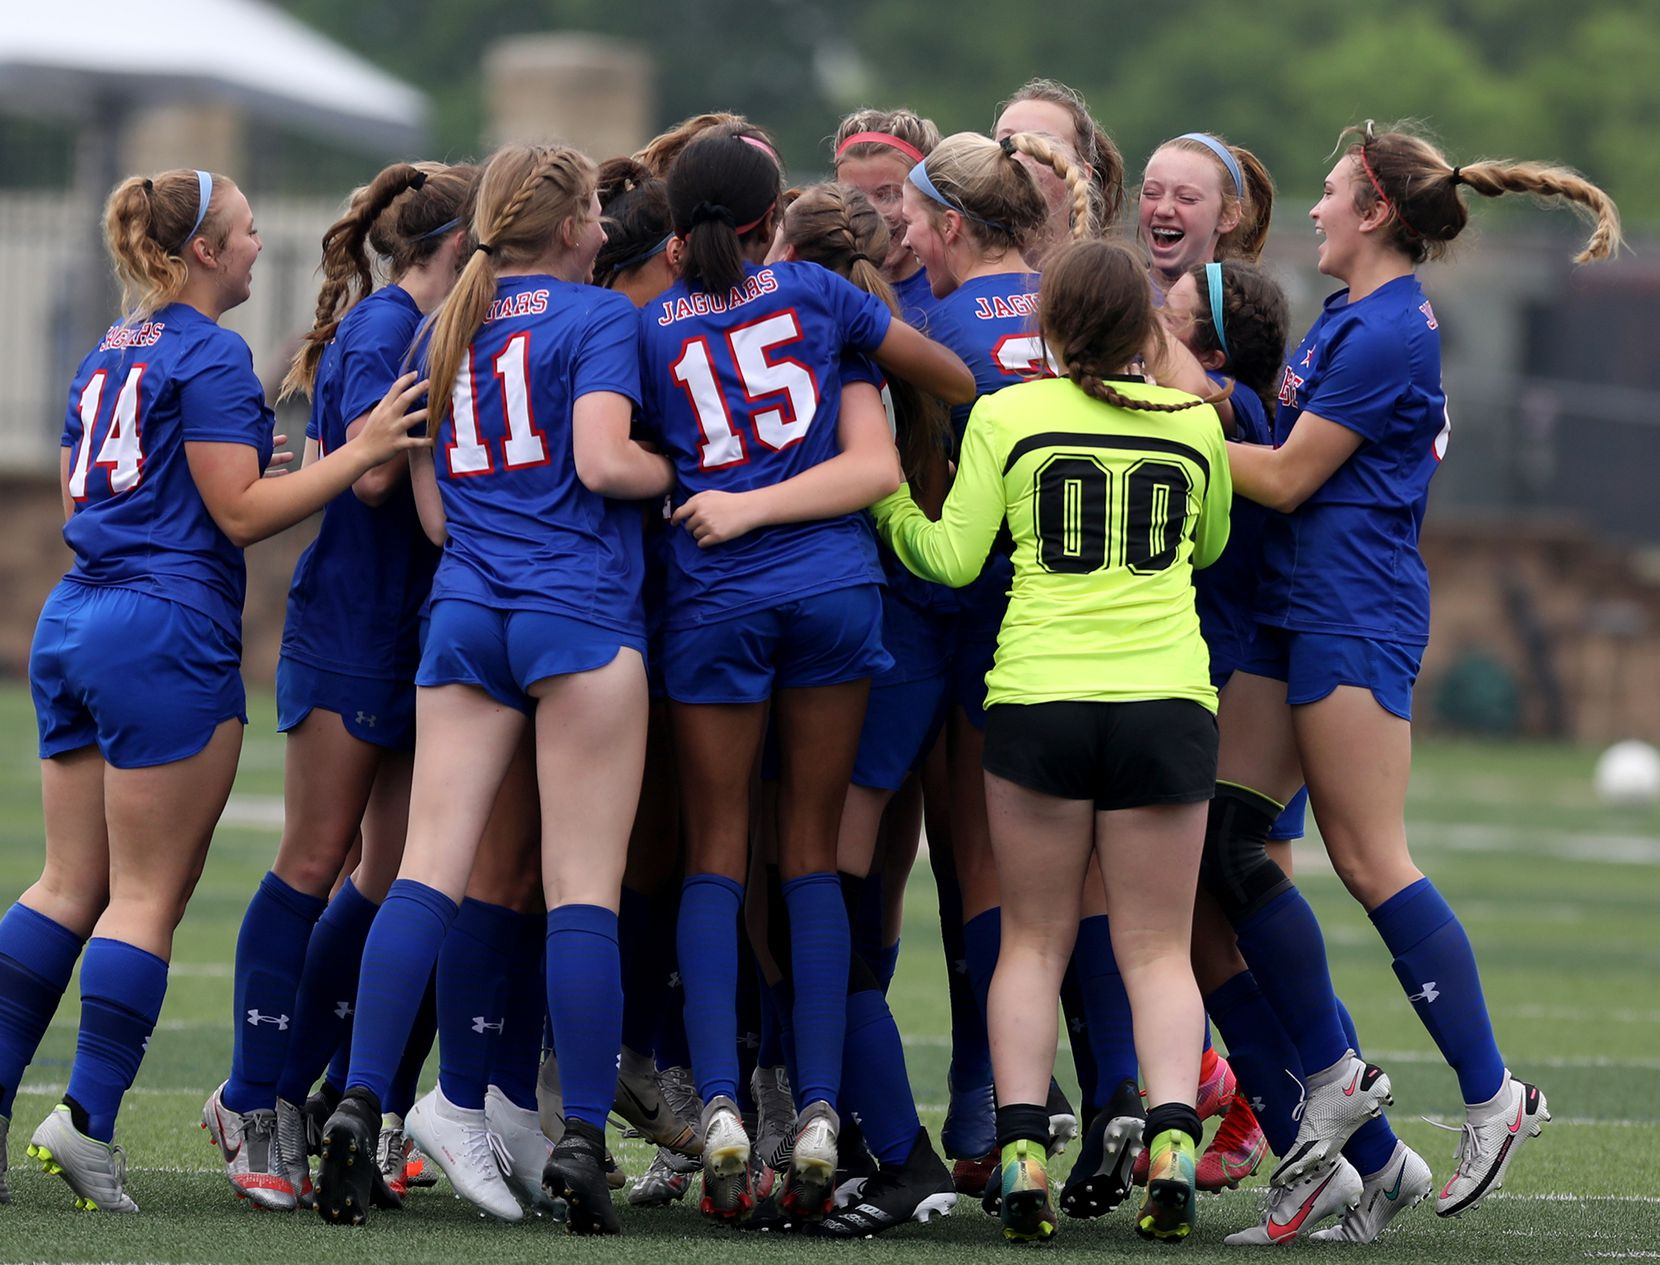 Midlothian Heritage players celebrate after their win over Calallen